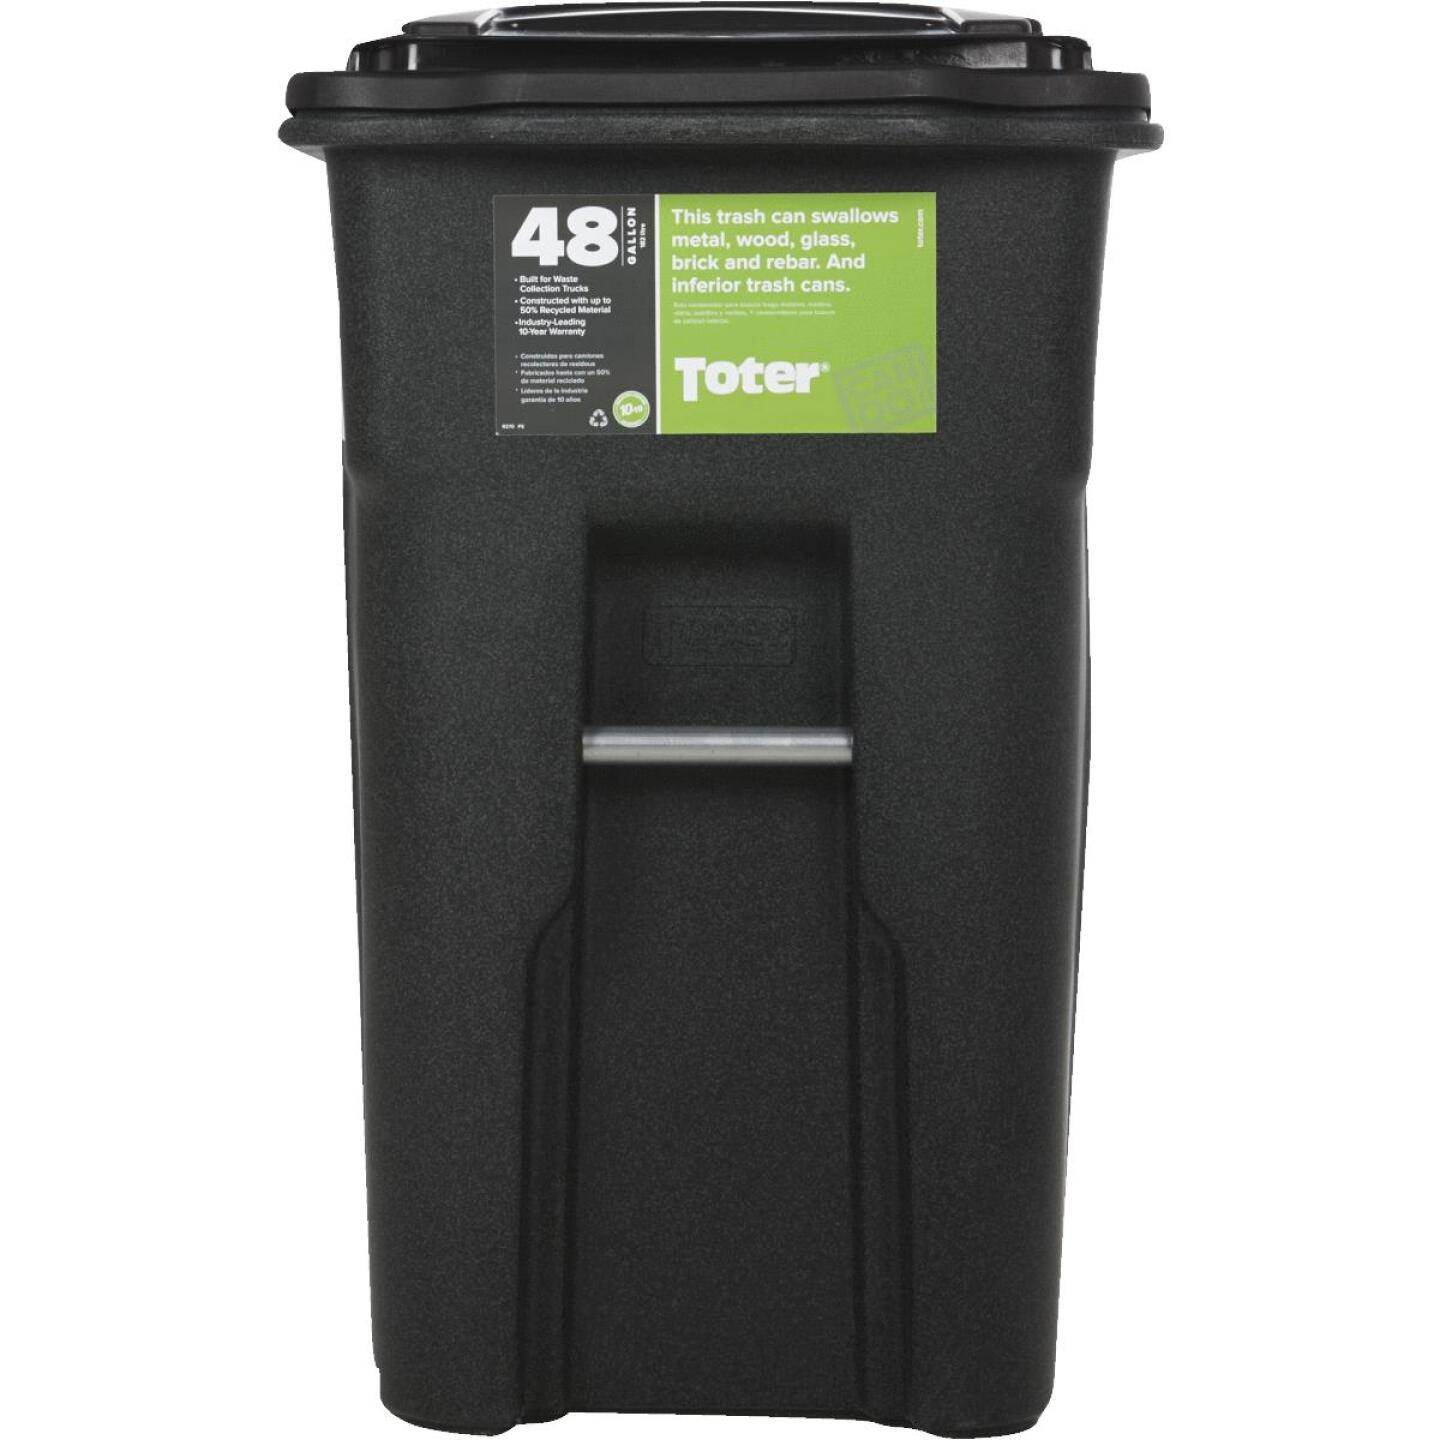 Toter 48 Gal. Commercial Trash Can Image 2